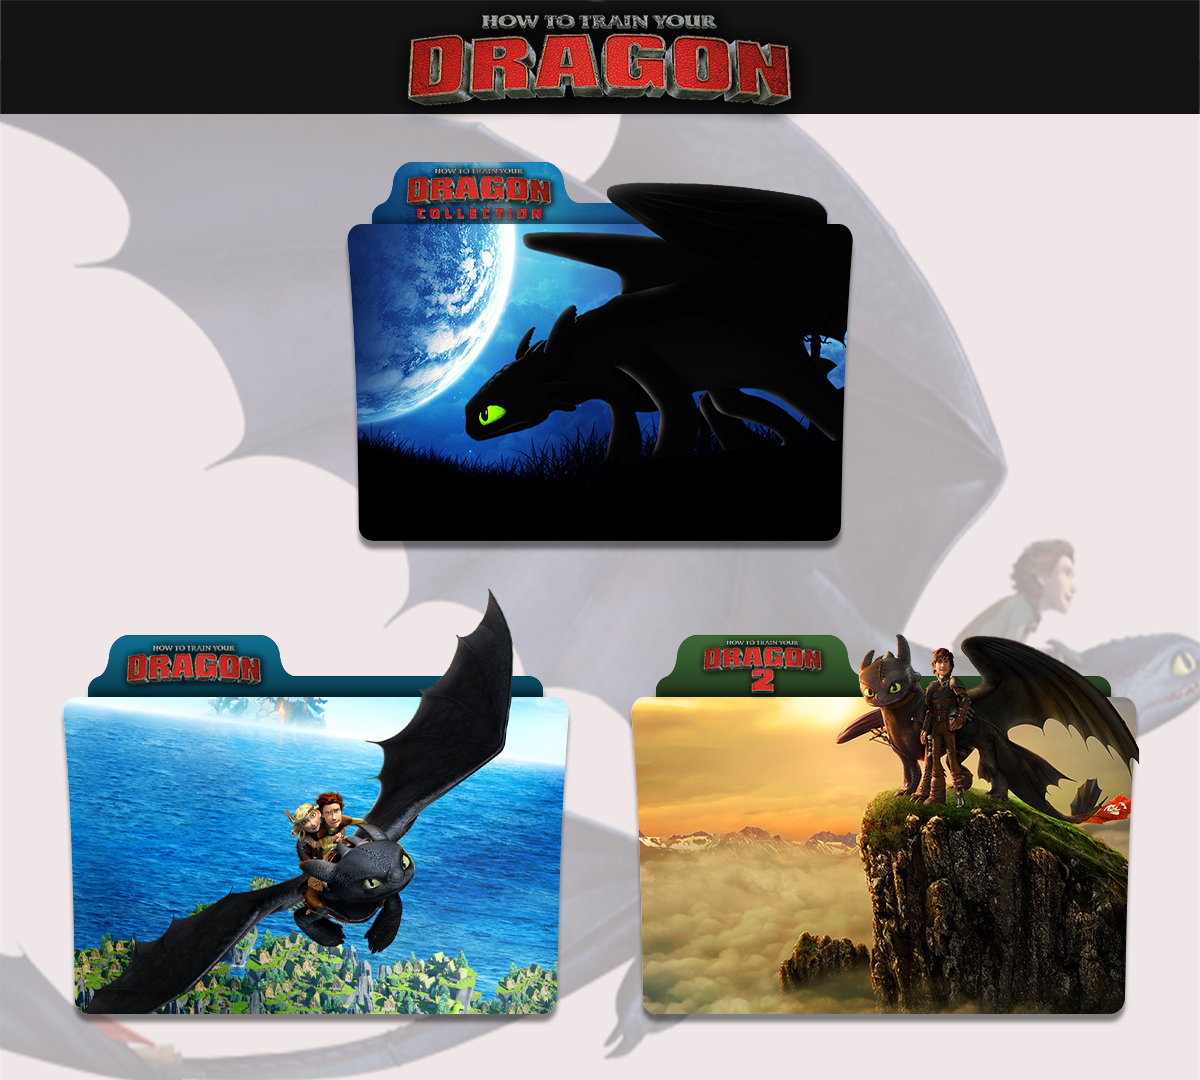 How To Train Your Dragon 2010 2014 Folder Icon By Sonerbyzt On Deviantart